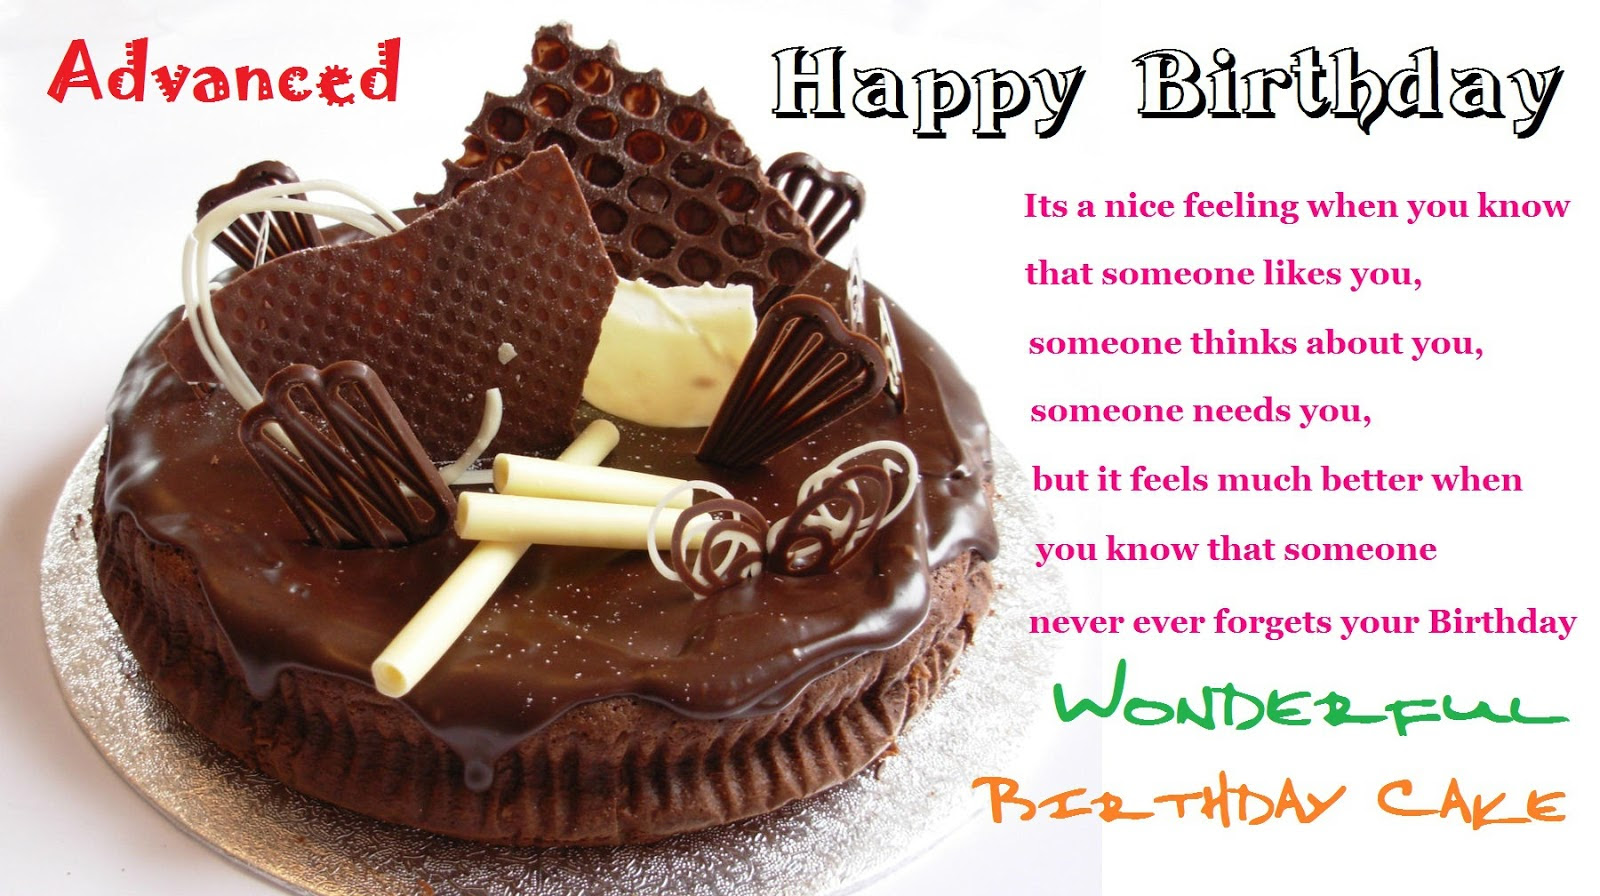 Birthday Cake And Wishes For Friends